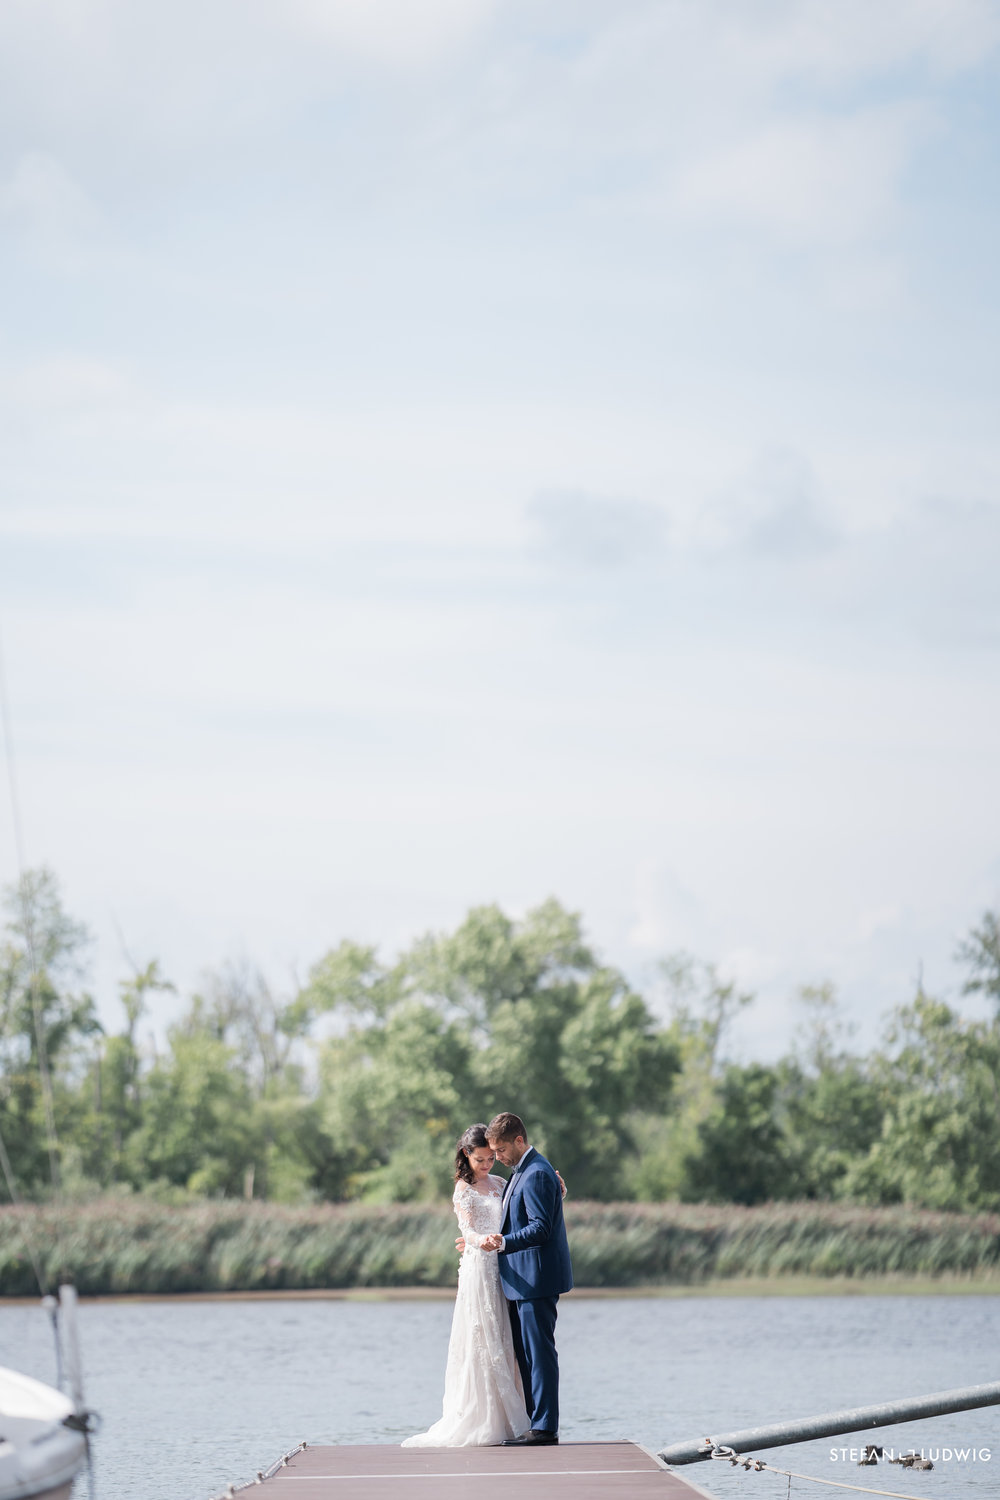 Heather and Andrew Wedding Photography ay Meadow Ridge Farm in Hudson NY by Stefan Ludwig Photography-47.jpg